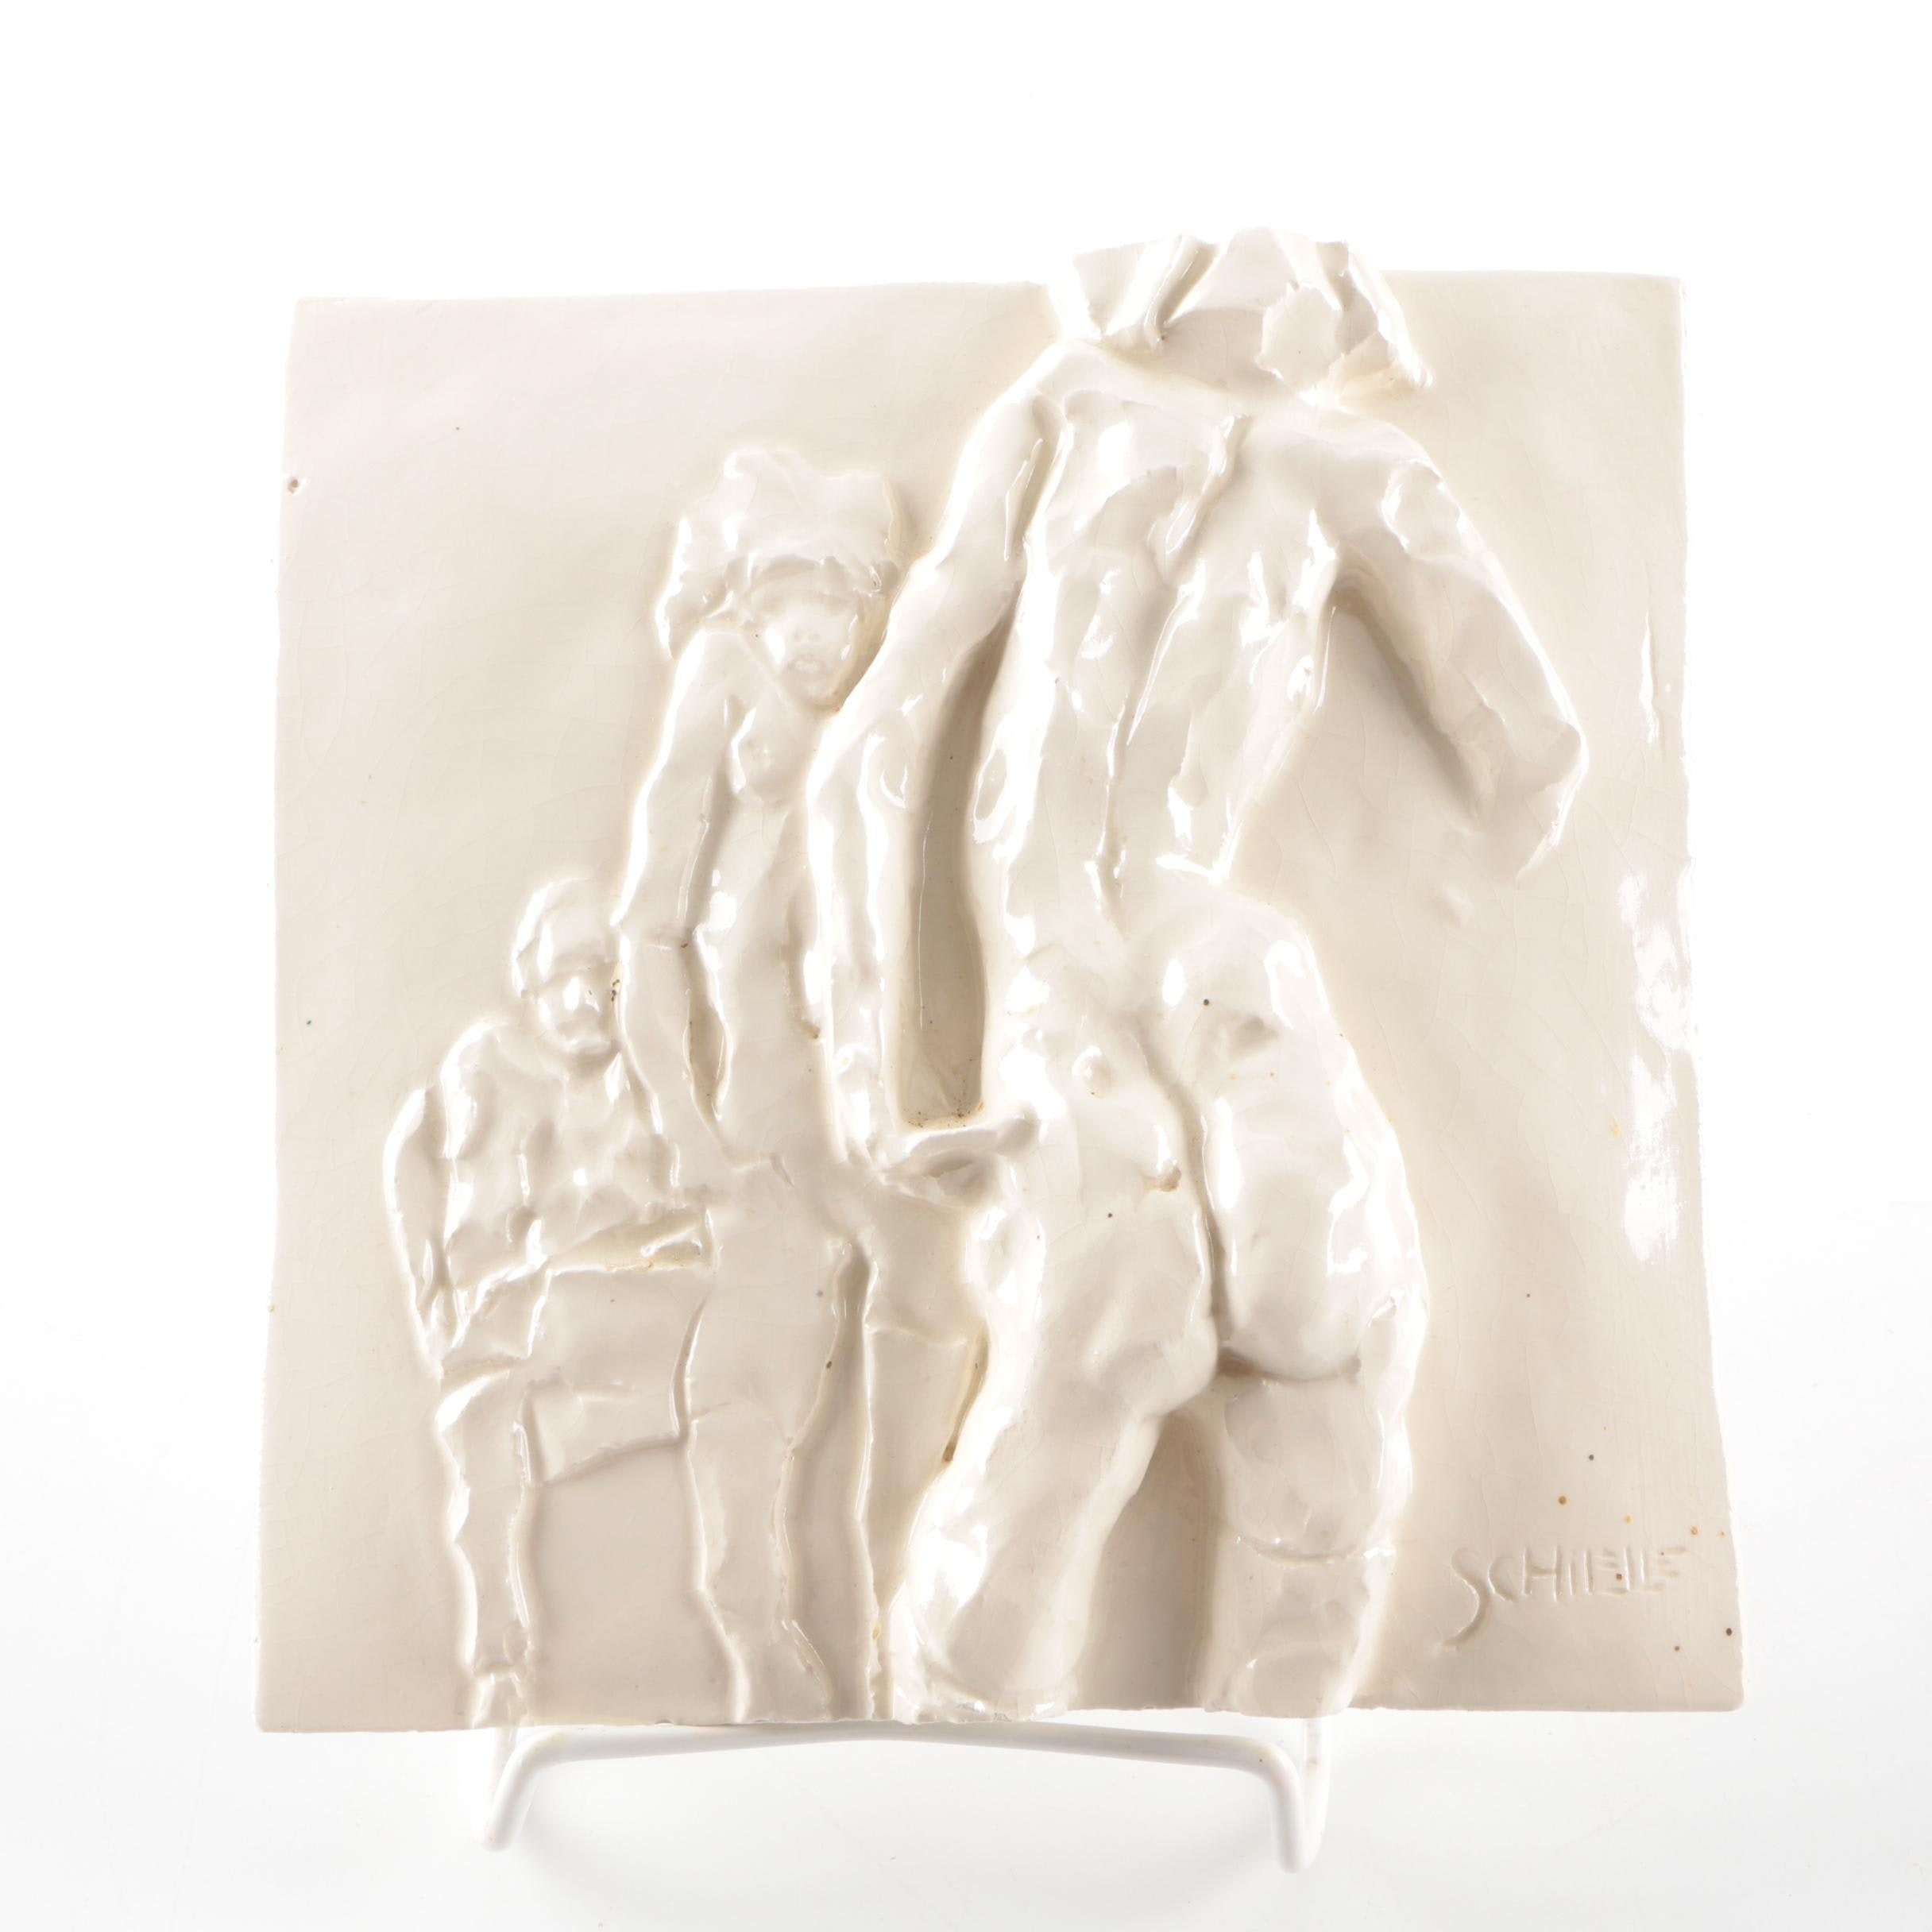 Sculpted Tile After Egon Schiele Drawing